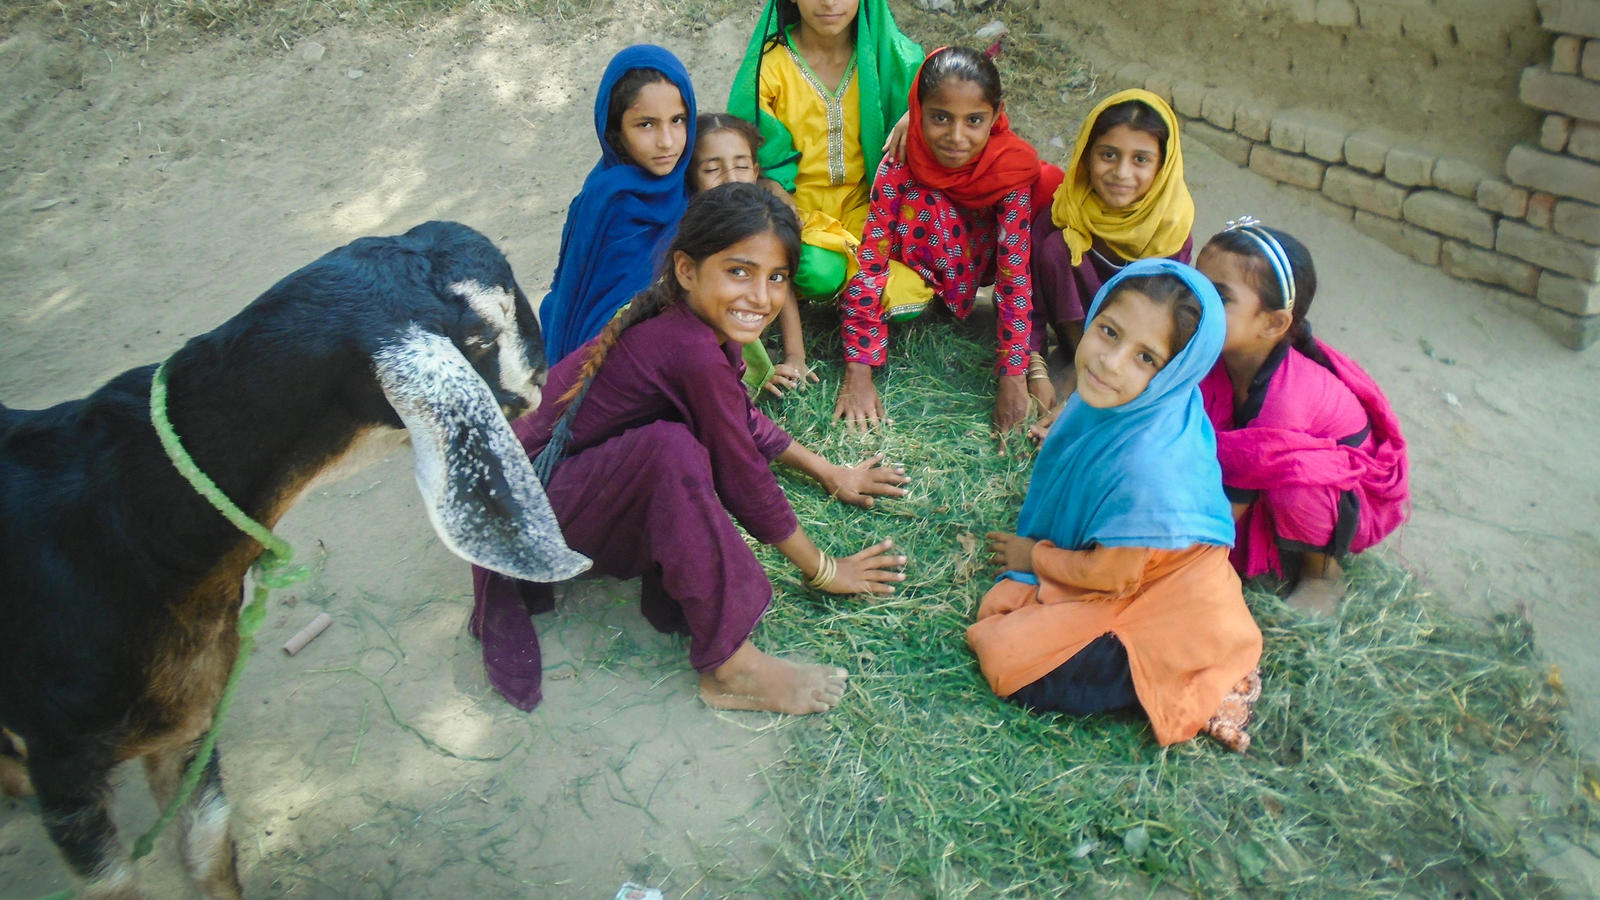 Aleena, 7, playing with her friends in the village of Waan Pitafi, Pakistan.